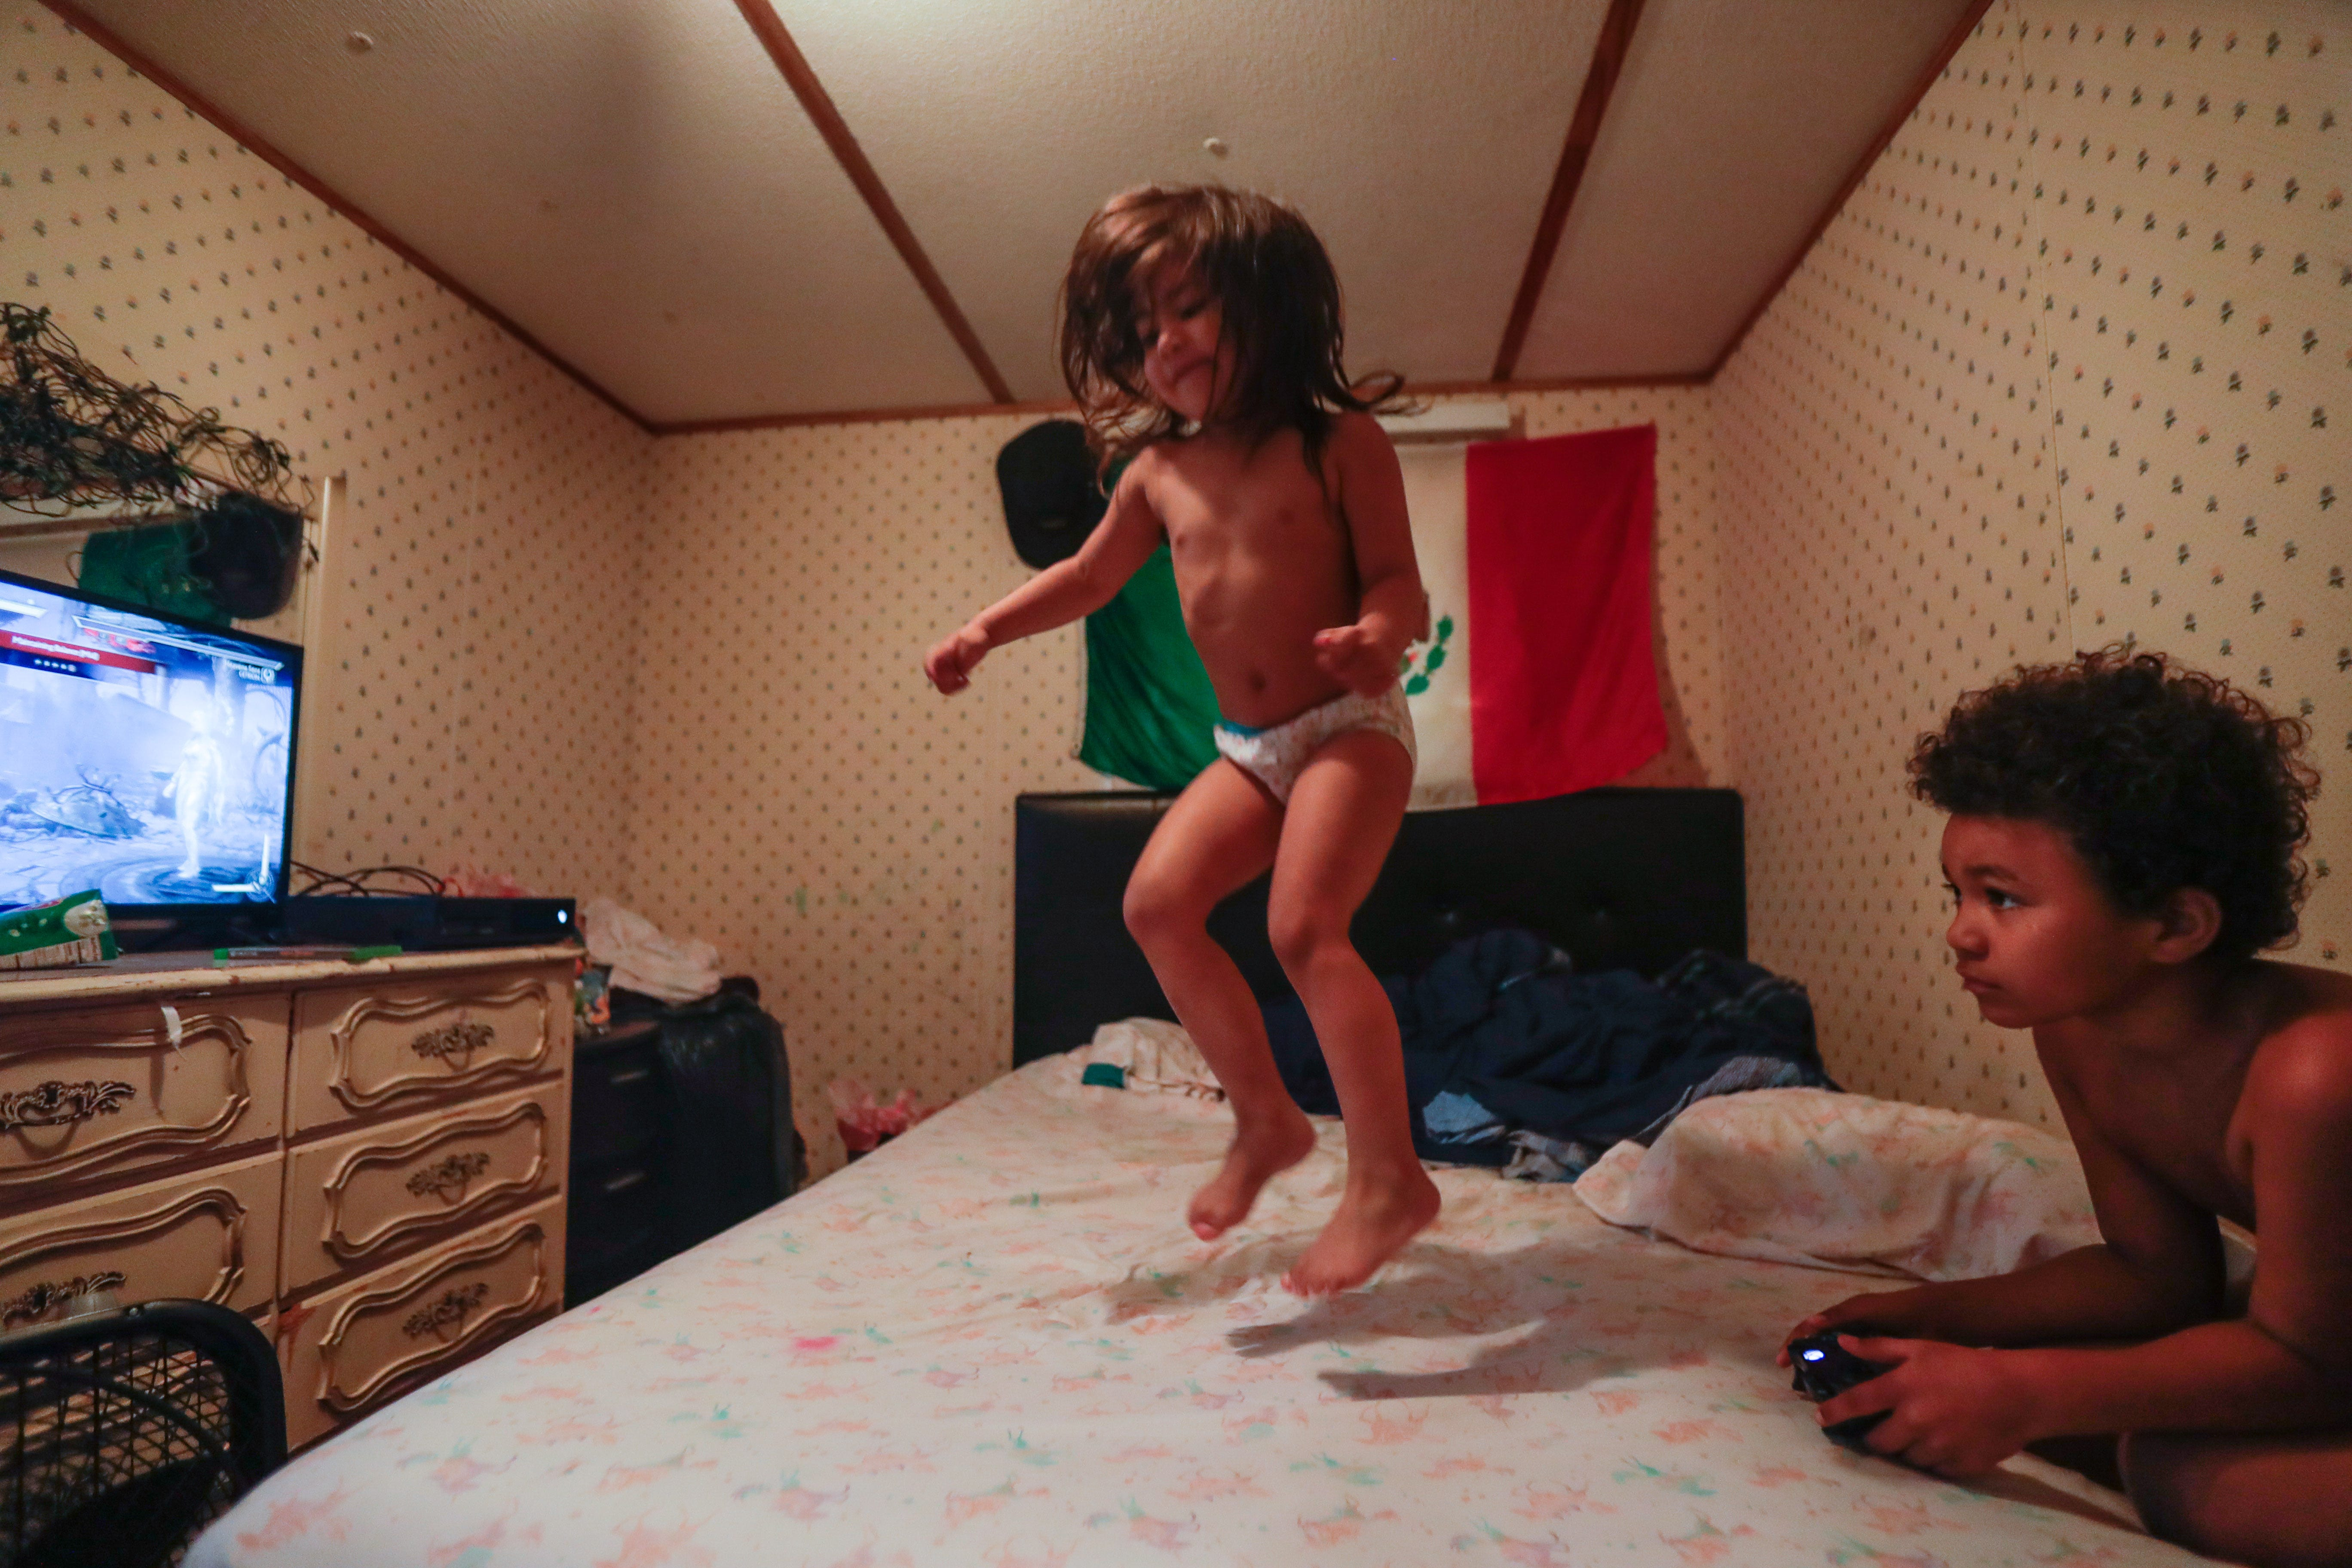 Victoria, 3, jumps on her mom's bed while her 8-year-old brother Romeo plays Xbox games. The siblings live with their mom, her younger sister, and their mom's husband.